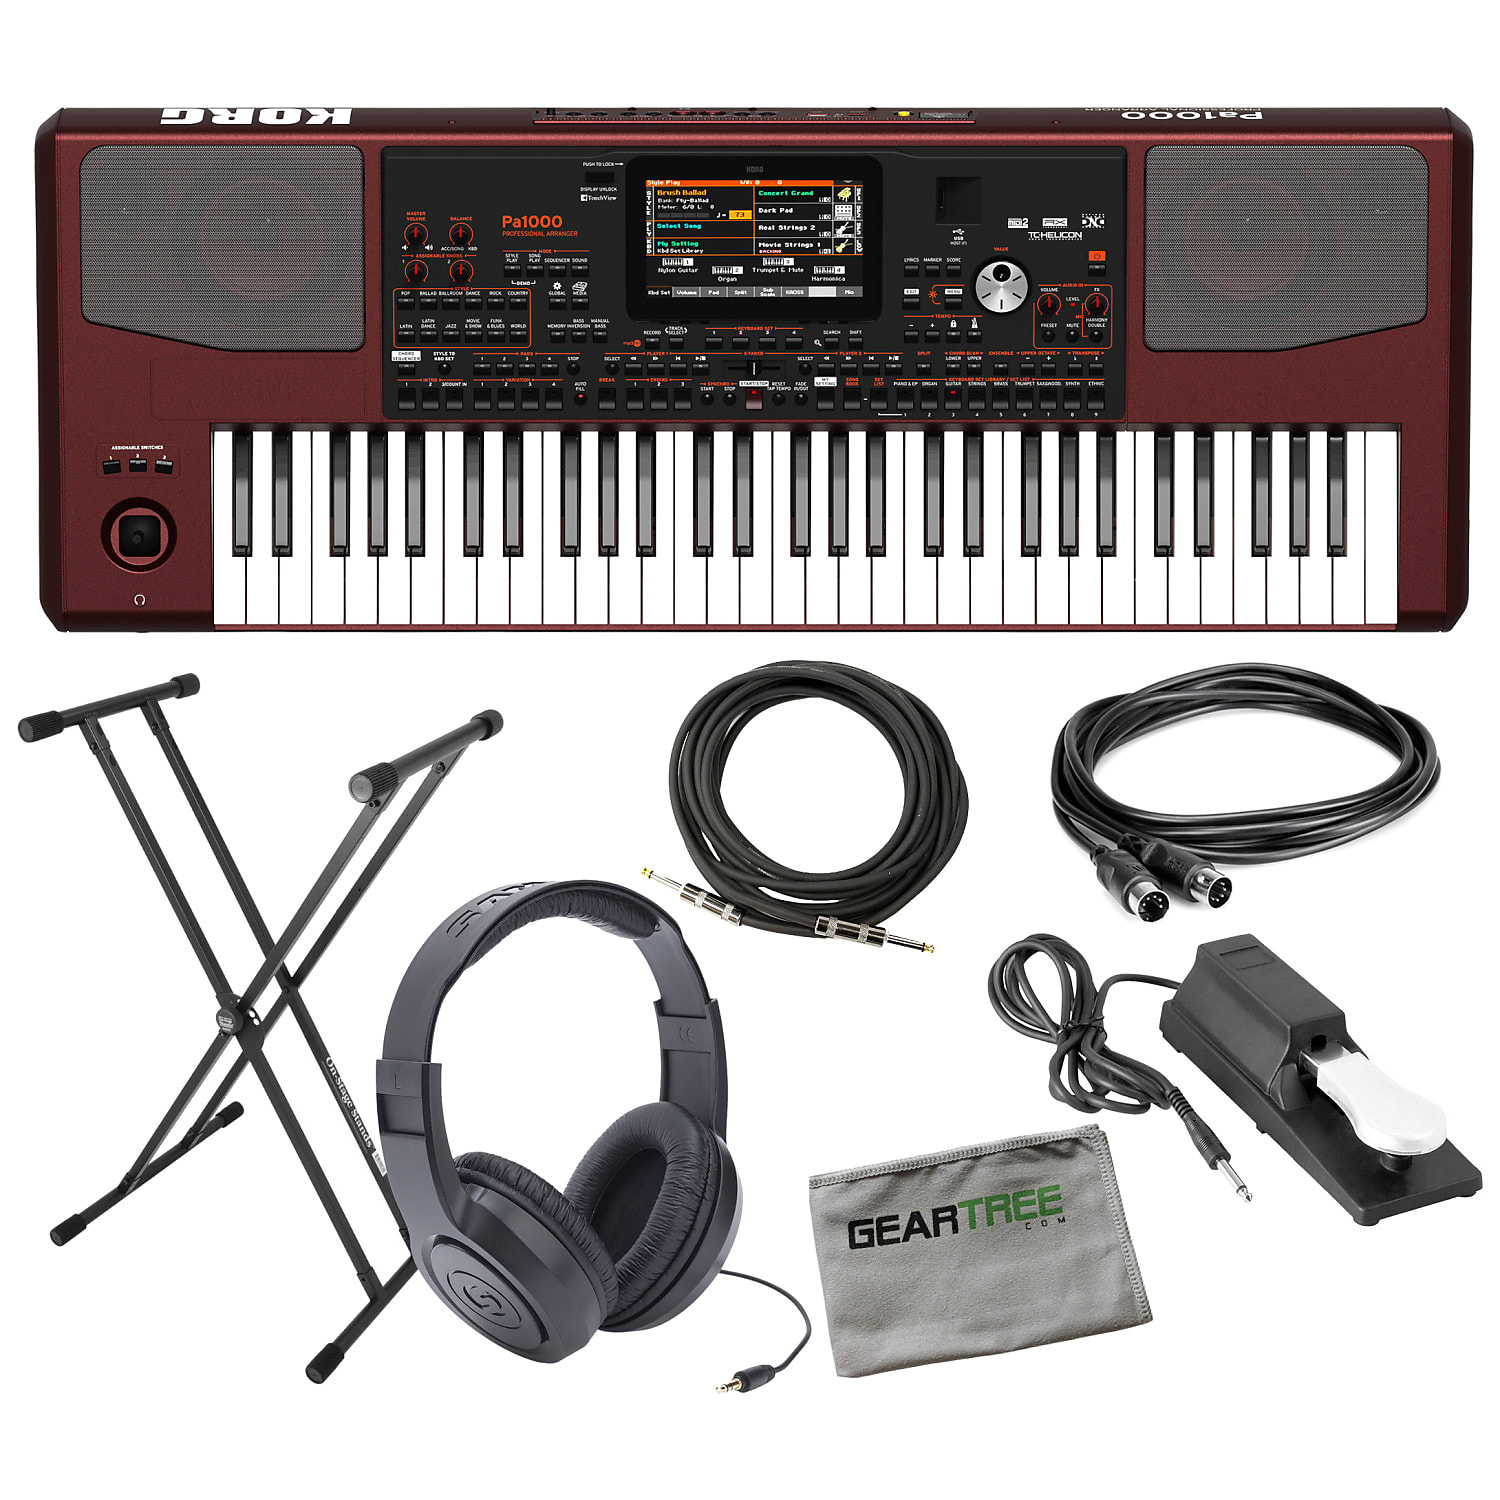 Sustain Pedal /& Studio Headphones 5 items Korg PA1000 Professional Arranger Keyboard bundle with Knox Bench Stand